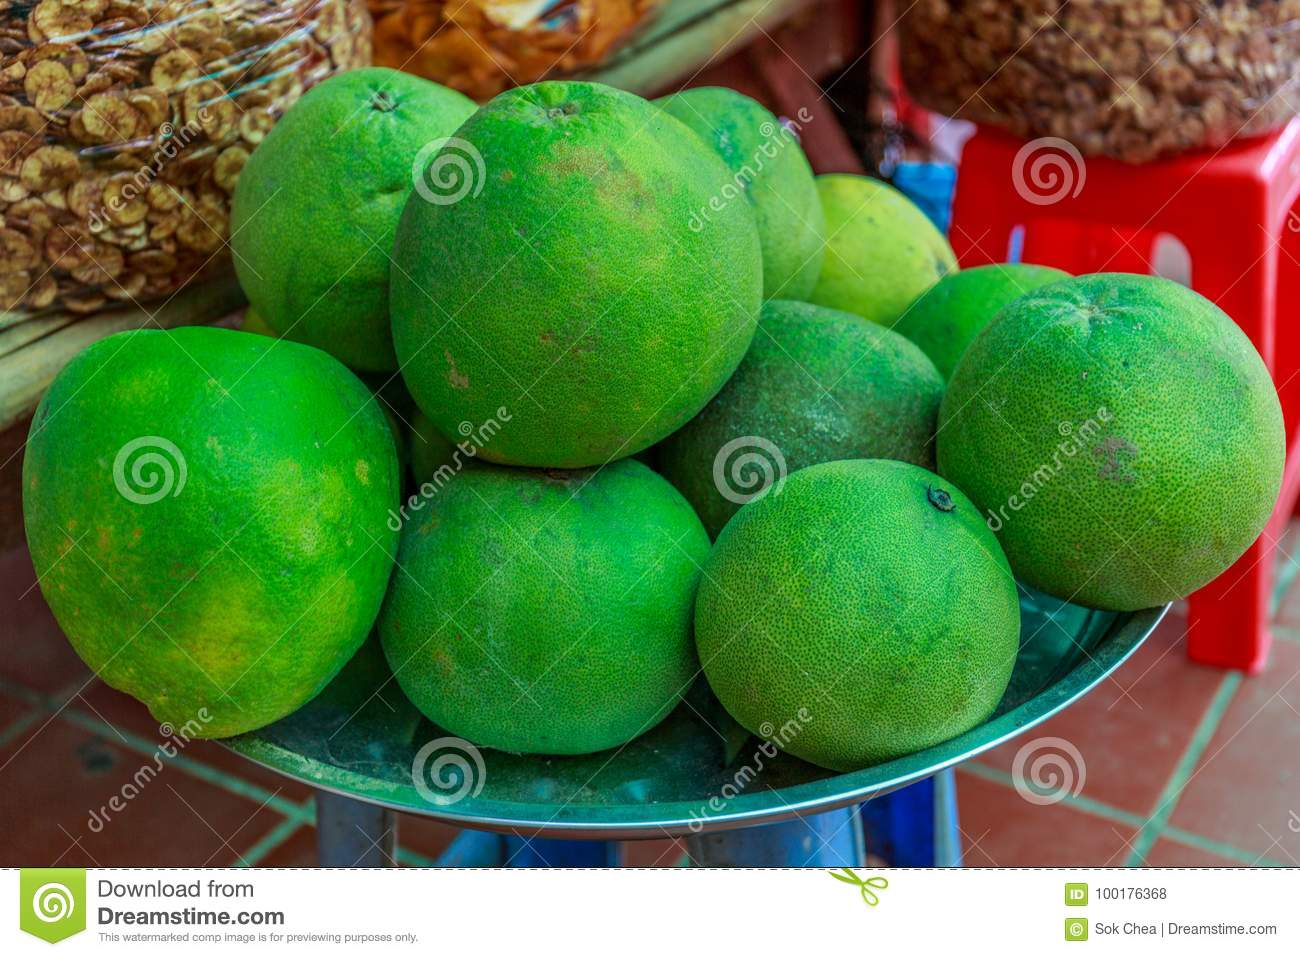 Grapefruits in Whole Displayed for Sale in a Marketplace in Cambodia